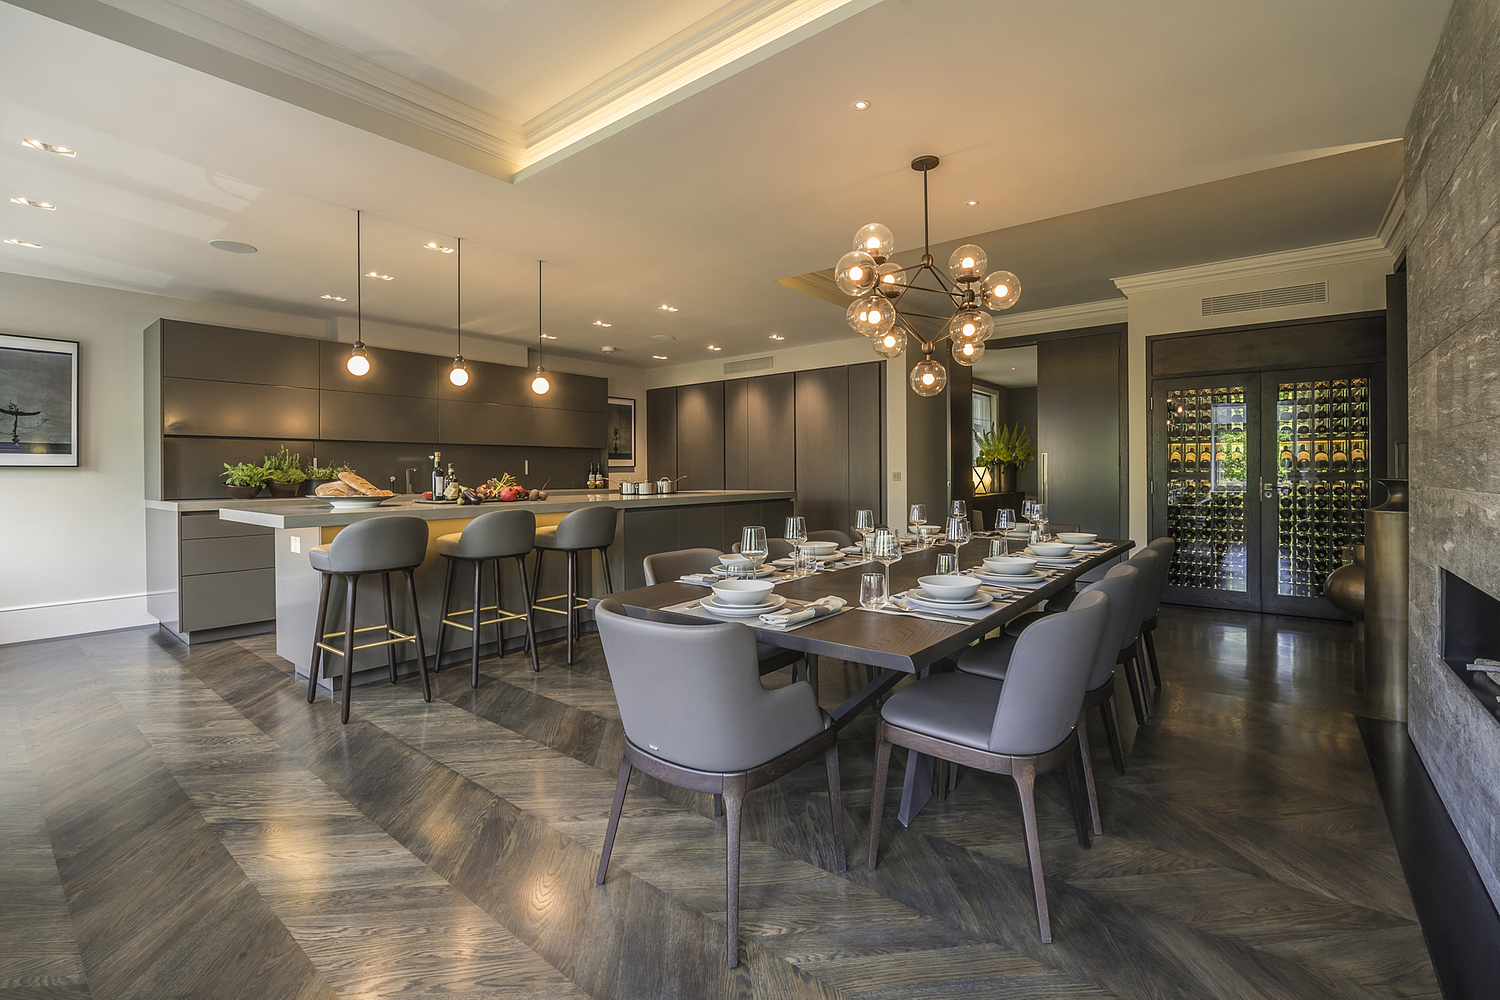 Kitchen and dining area, Knightsbridge apartment